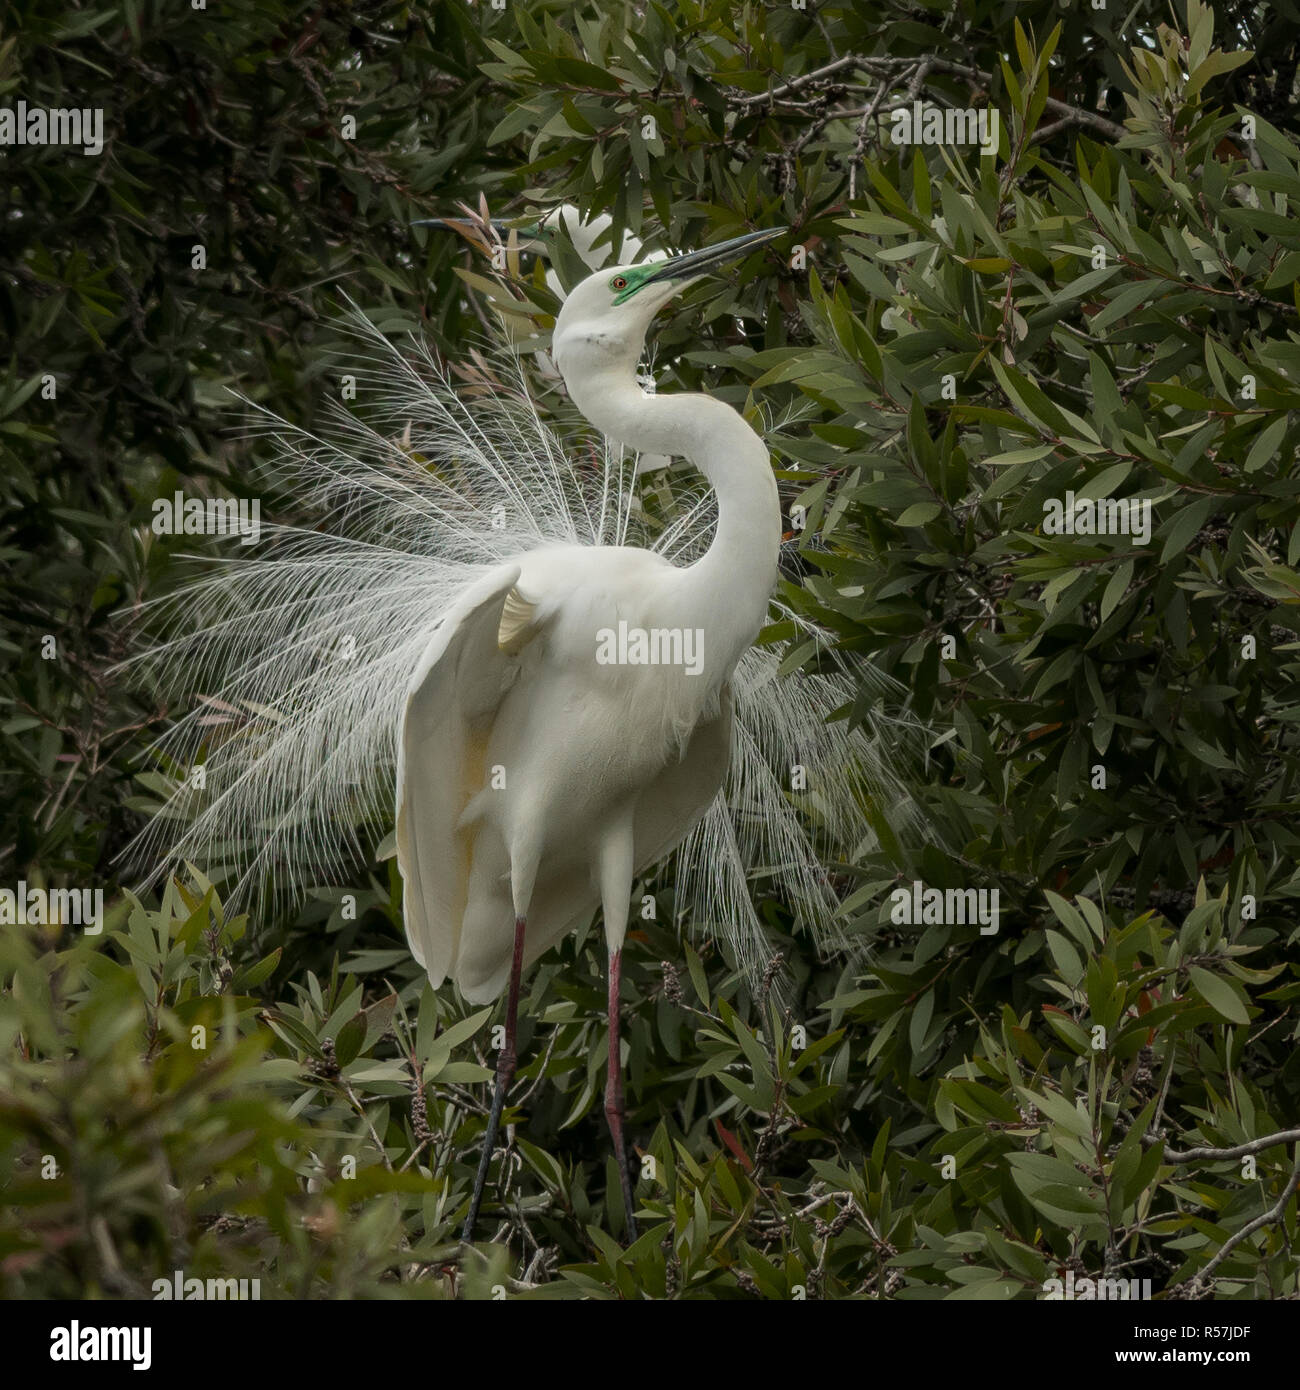 The eastern great egret (Ardea modesta) displaying its breeding plumage is a large heron with all-white plumage. Stock Photo